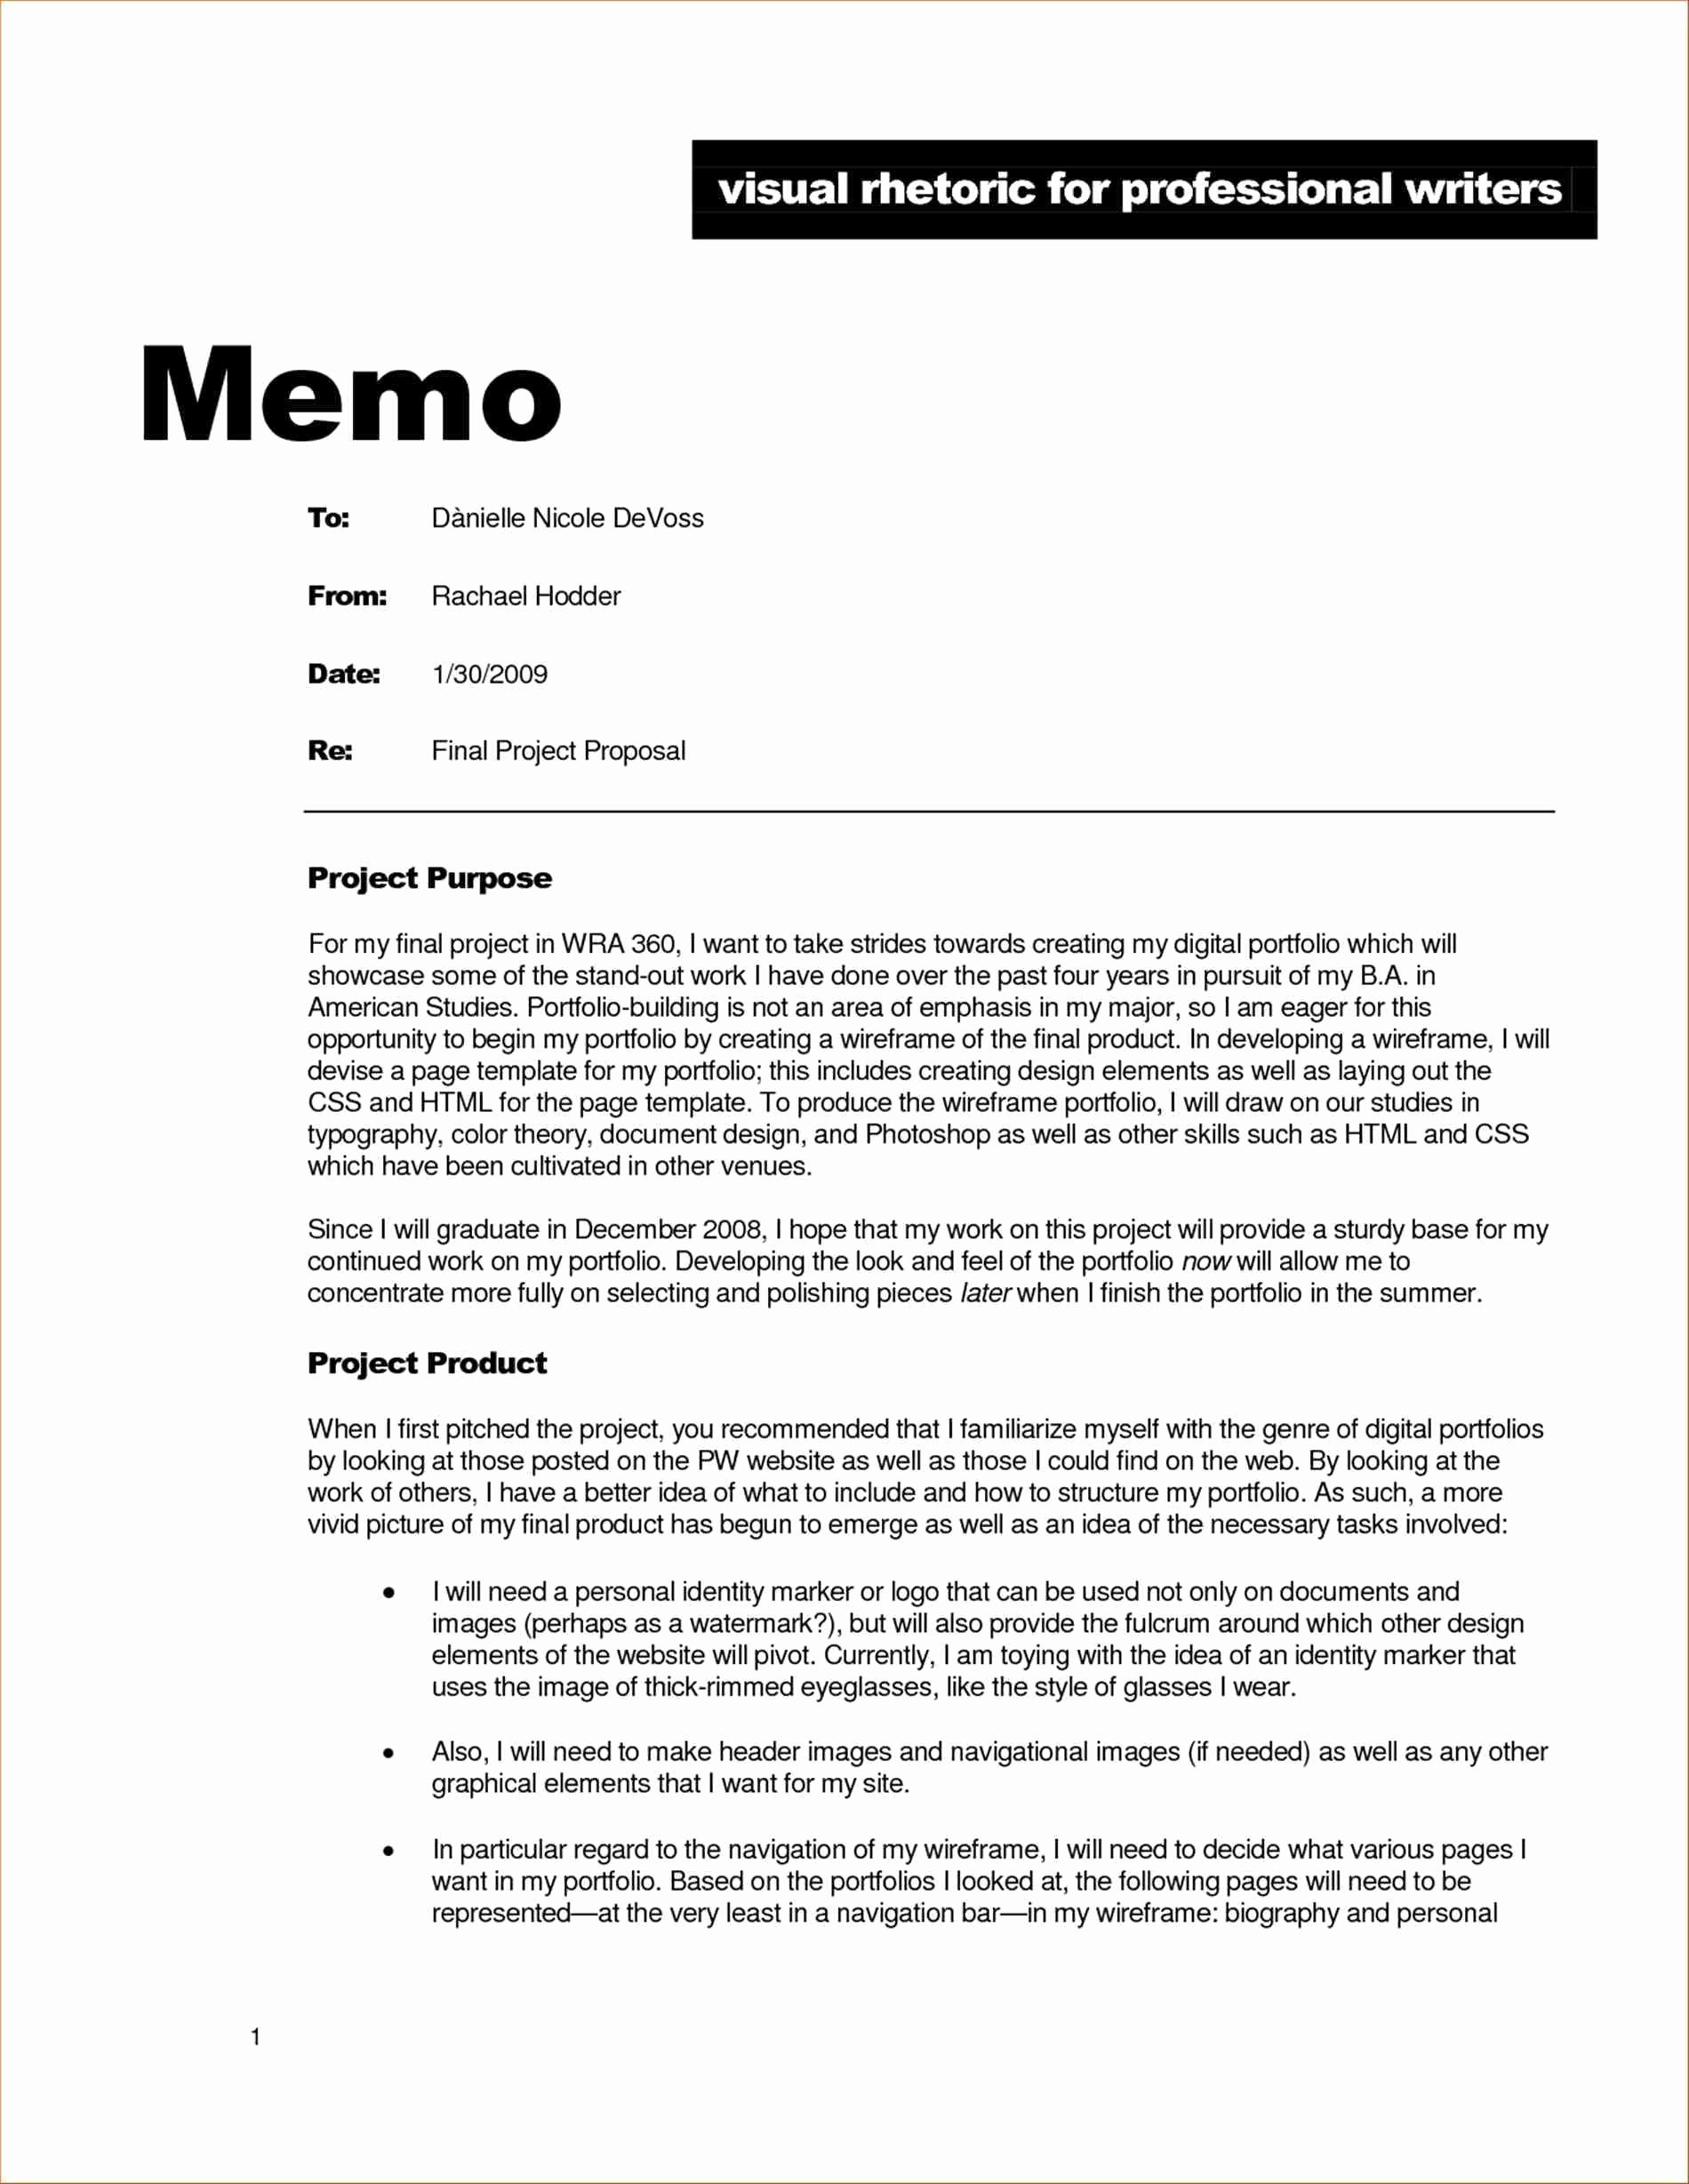 Memo Template Google Docs Choice Image Template Design Ideas